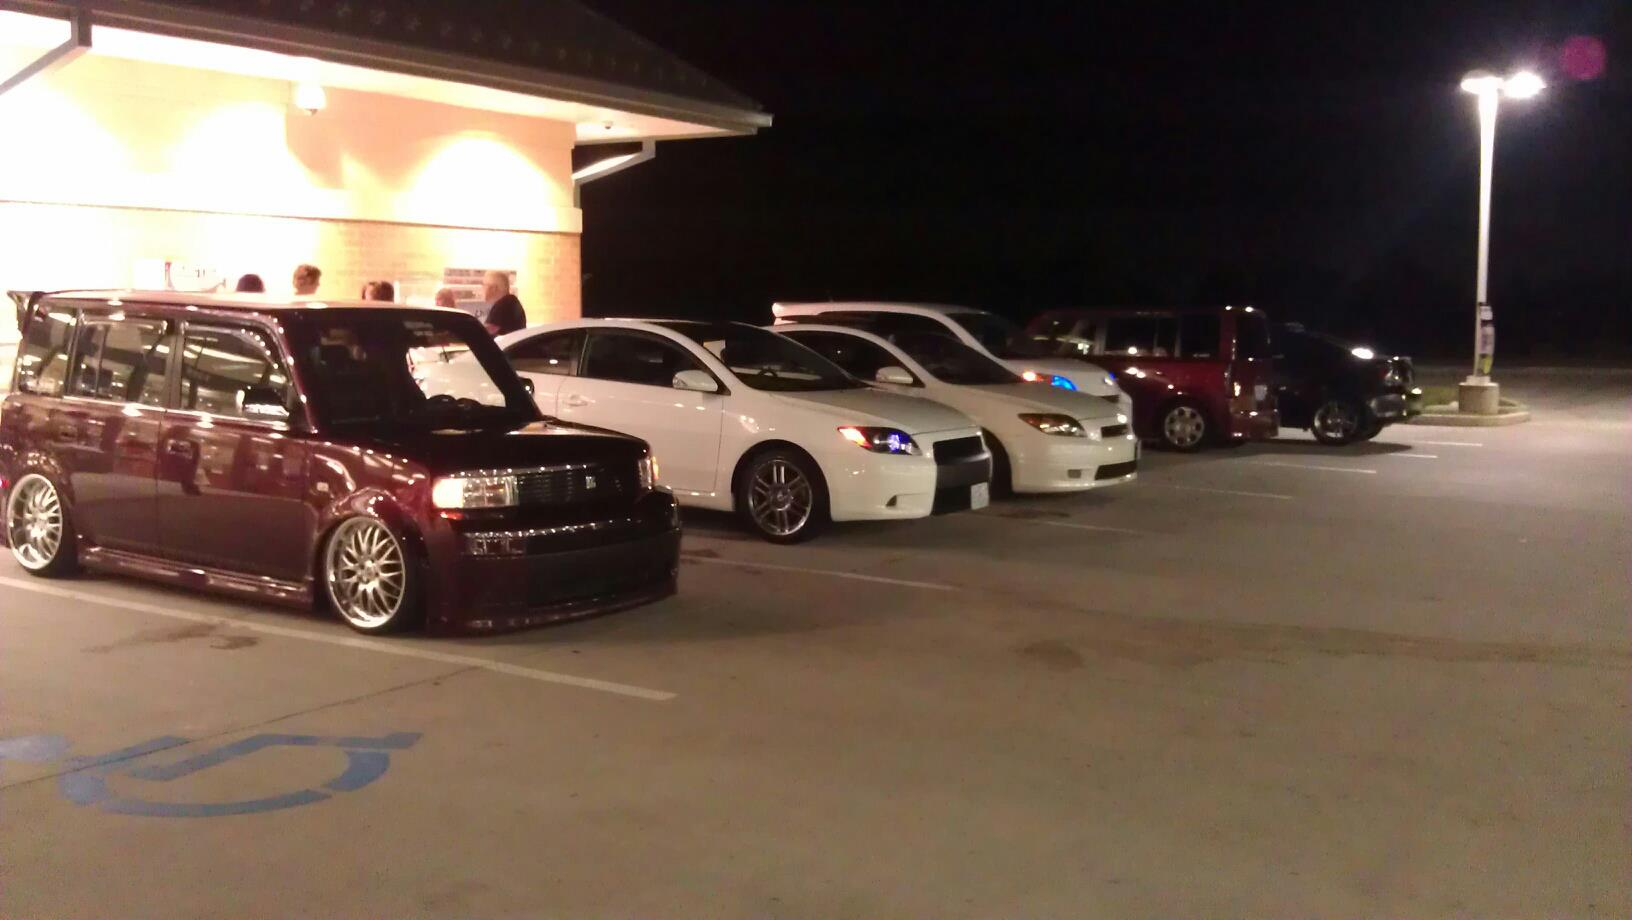 Club STLScion Reppin at the Gas Station-stlrep.jpg